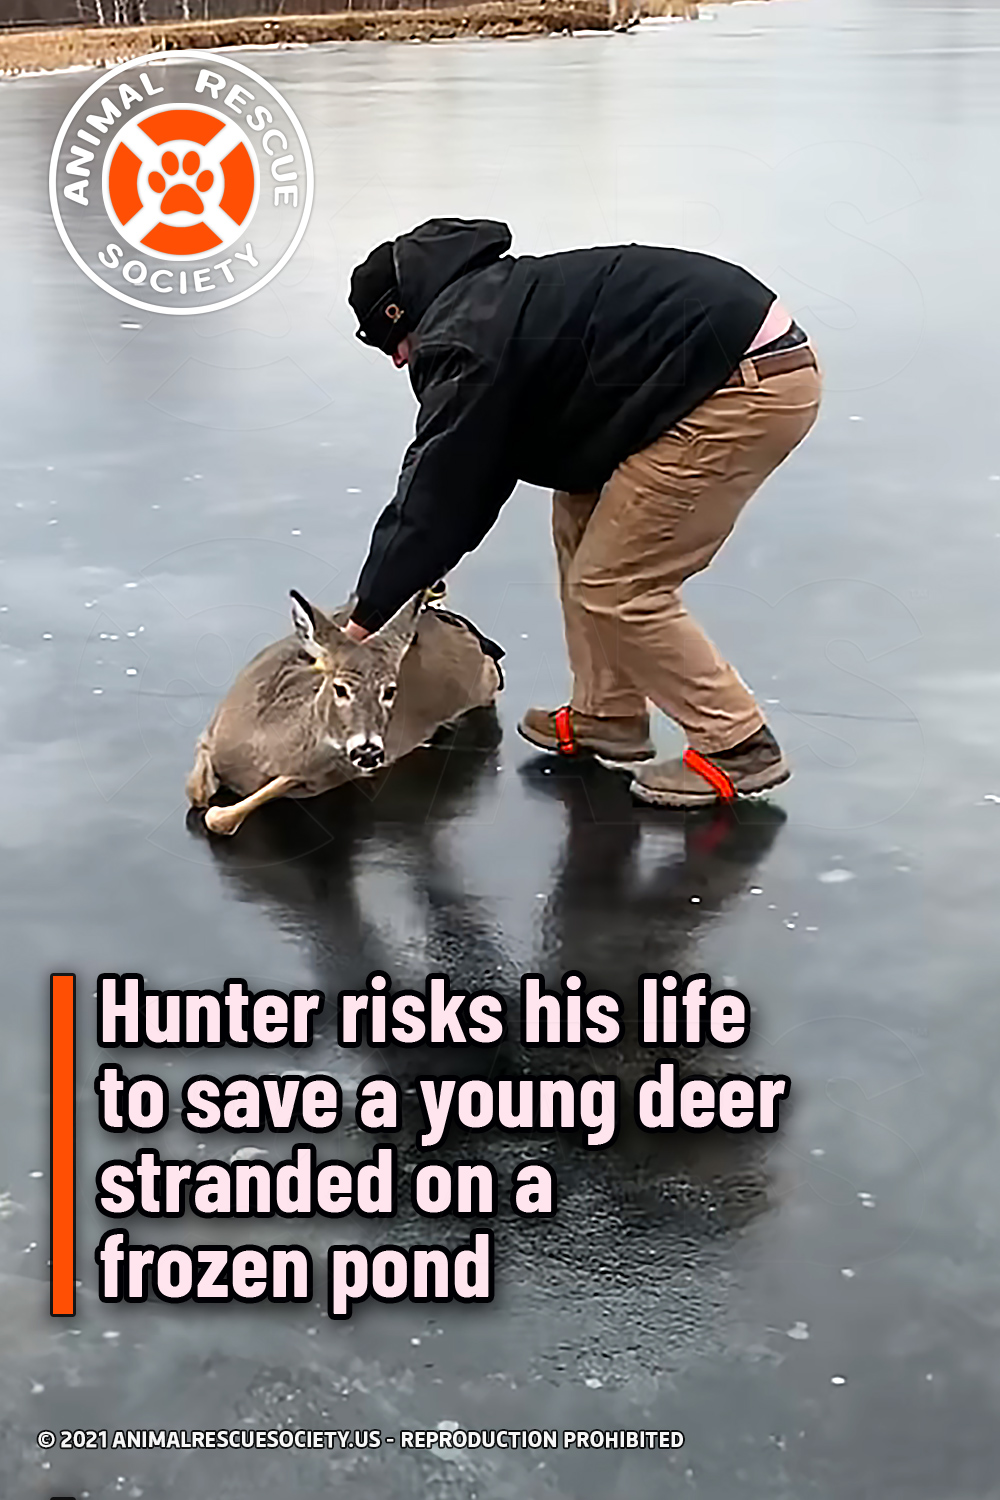 Hunter risks his life to save a young deer stranded on a frozen pond